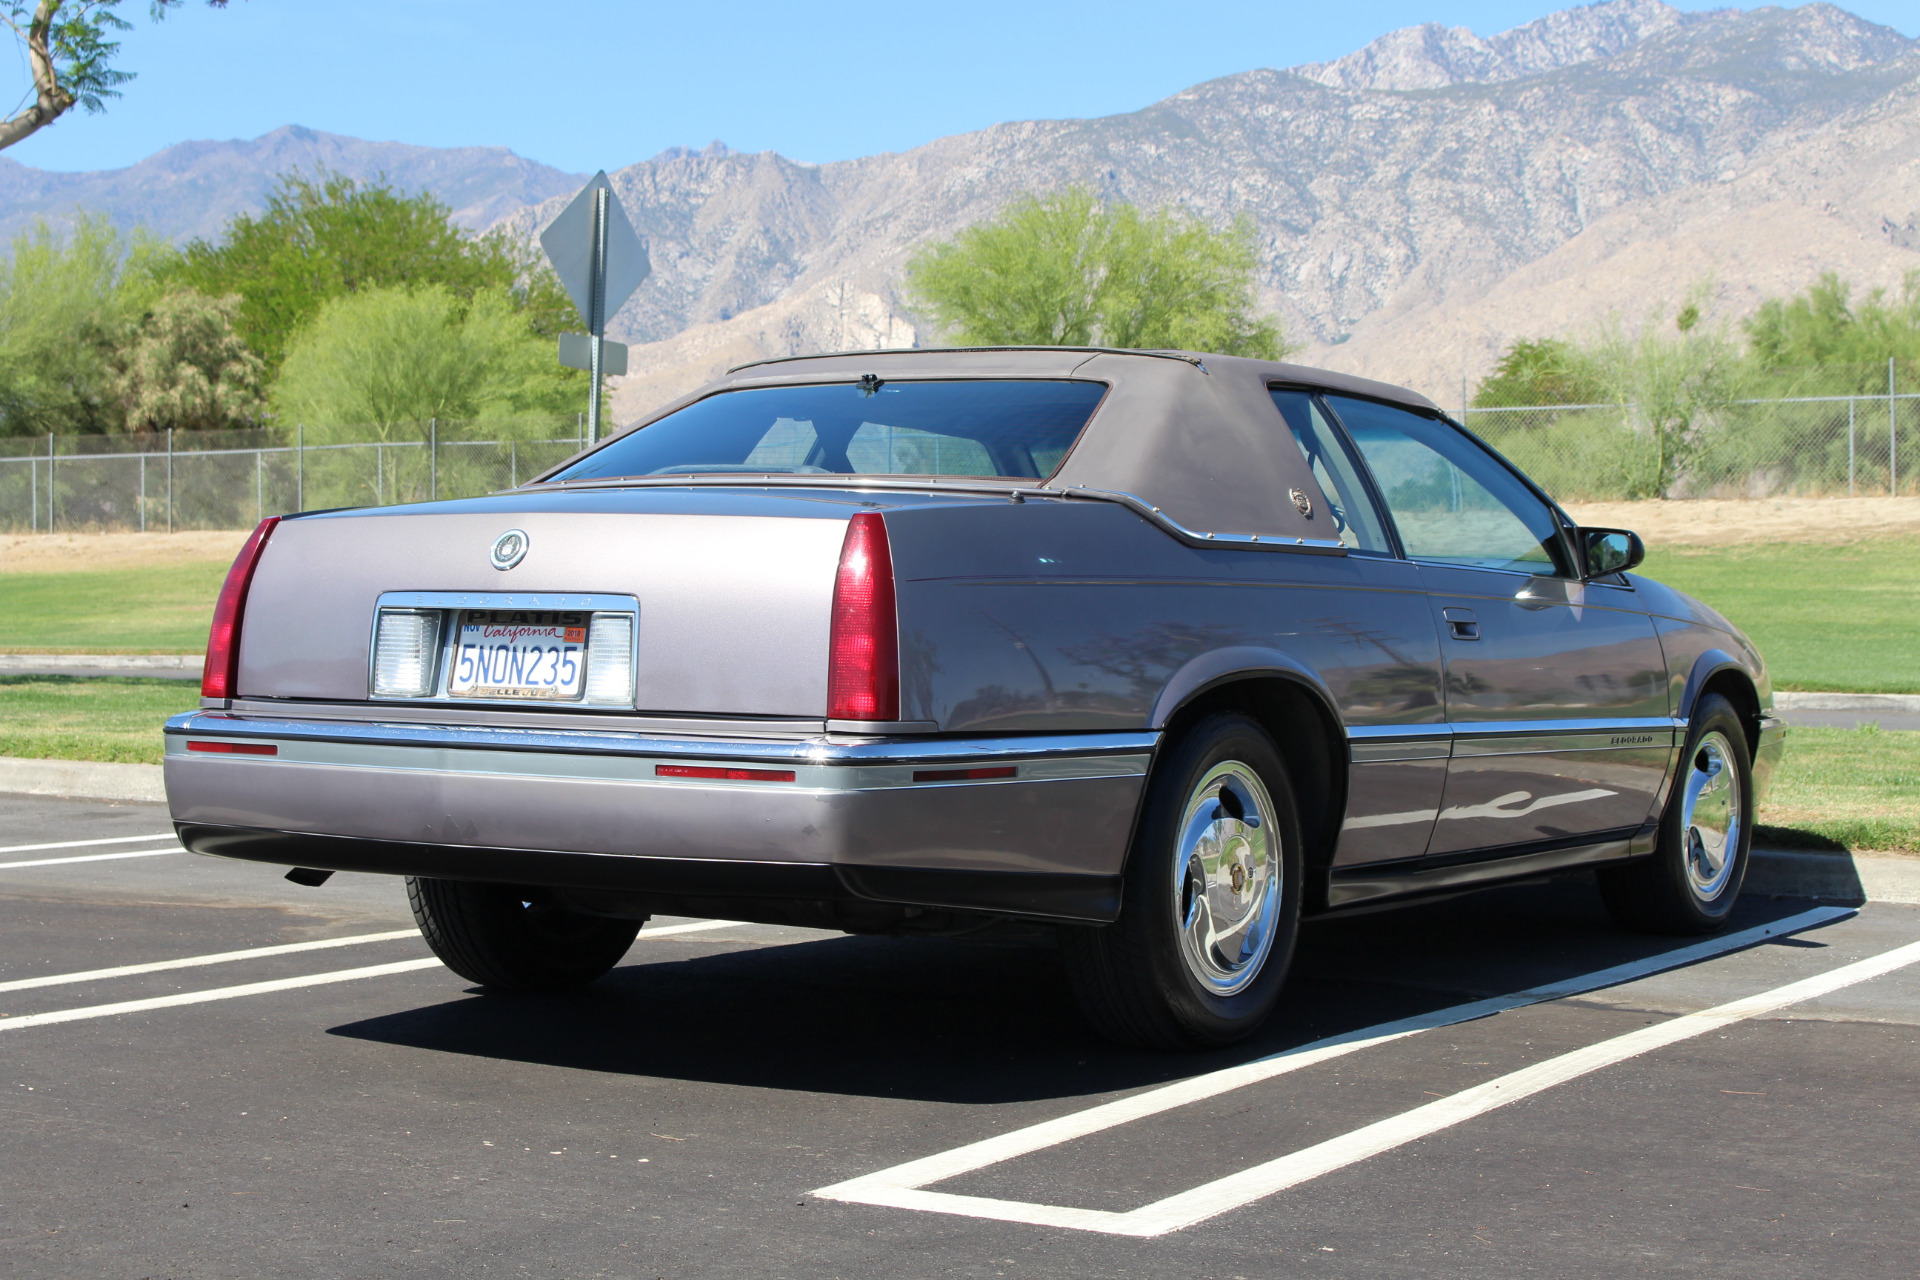 1992 cadillac eldorado stock ca431 for sale near palm springs ca ca cadillac dealer 1992 cadillac eldorado stock ca431